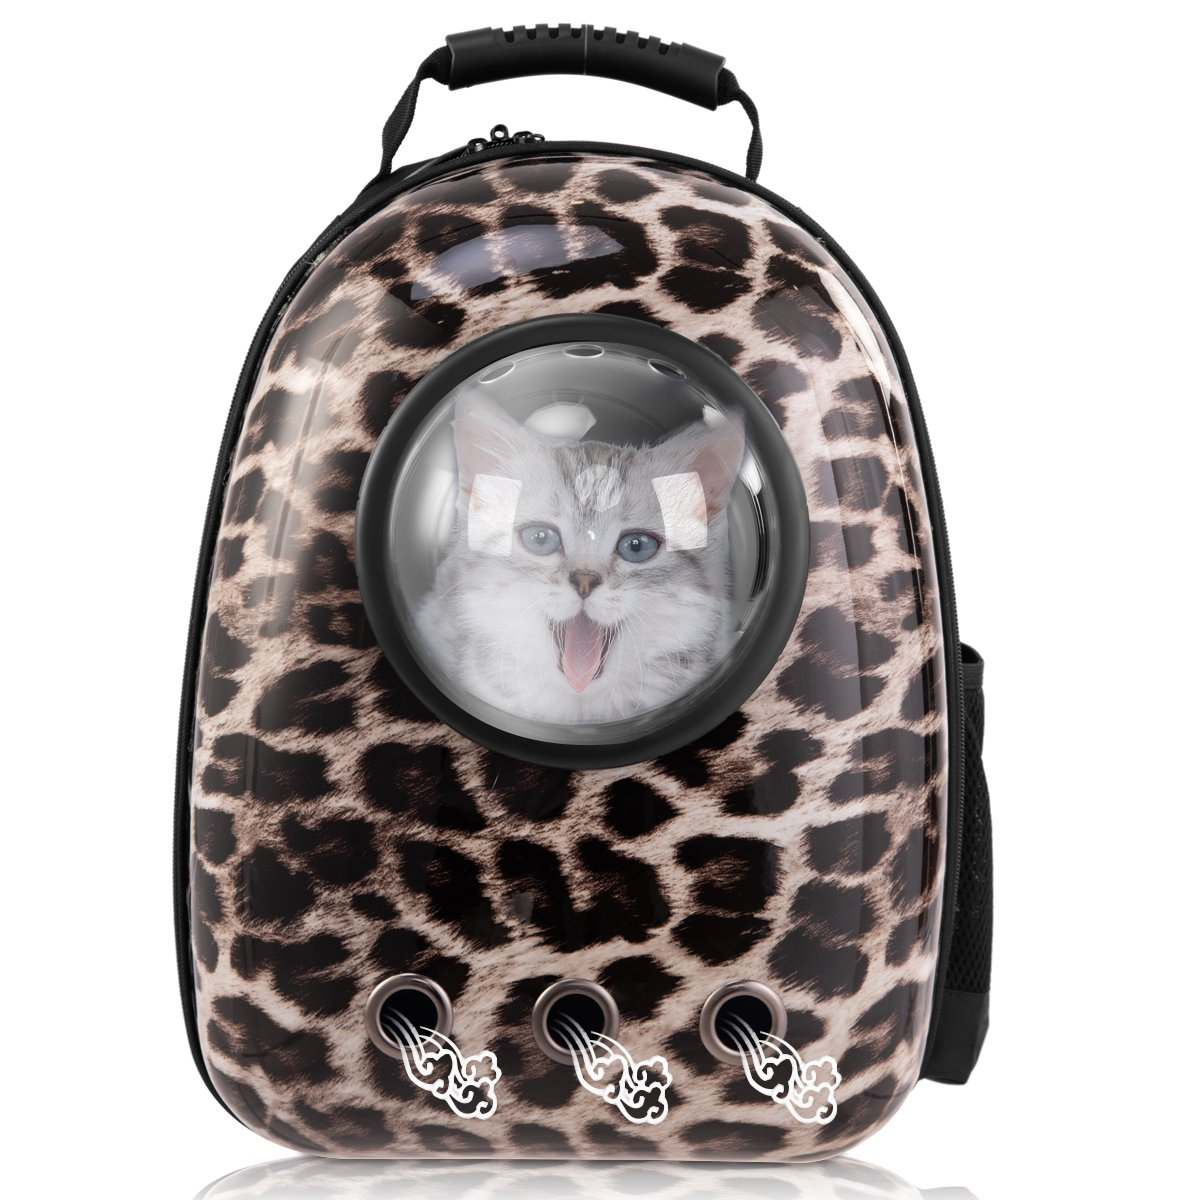 Leopard Giantex Astronaut Pet Cat Dog Puppy Carrier Travel Bag Space Capsule Backpack Breathable (Leopard)